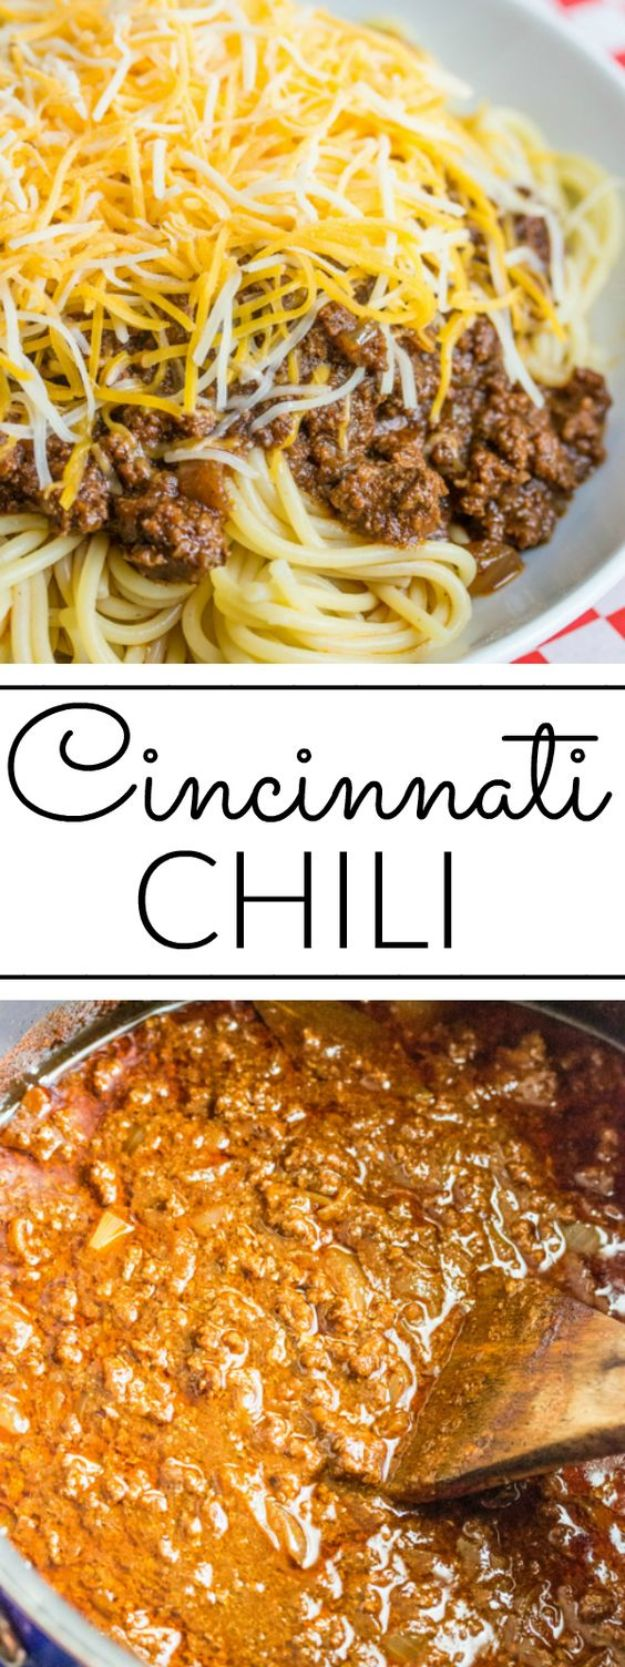 Best Recipes With Ground Beef - Cincinnati Chili - Easy Dinners and Ground Beef Recipe Ideas - Quick Lunch Salads, Casseroles, Tacos, One Skillet Meals - Healthy Crockpot Foods With Hamburger Meat - Mexican Casserole, Instant Pot Carne Molida, Low Carb and Keto Diet - Rice, Pasta, Potatoes and Crescent Rolls